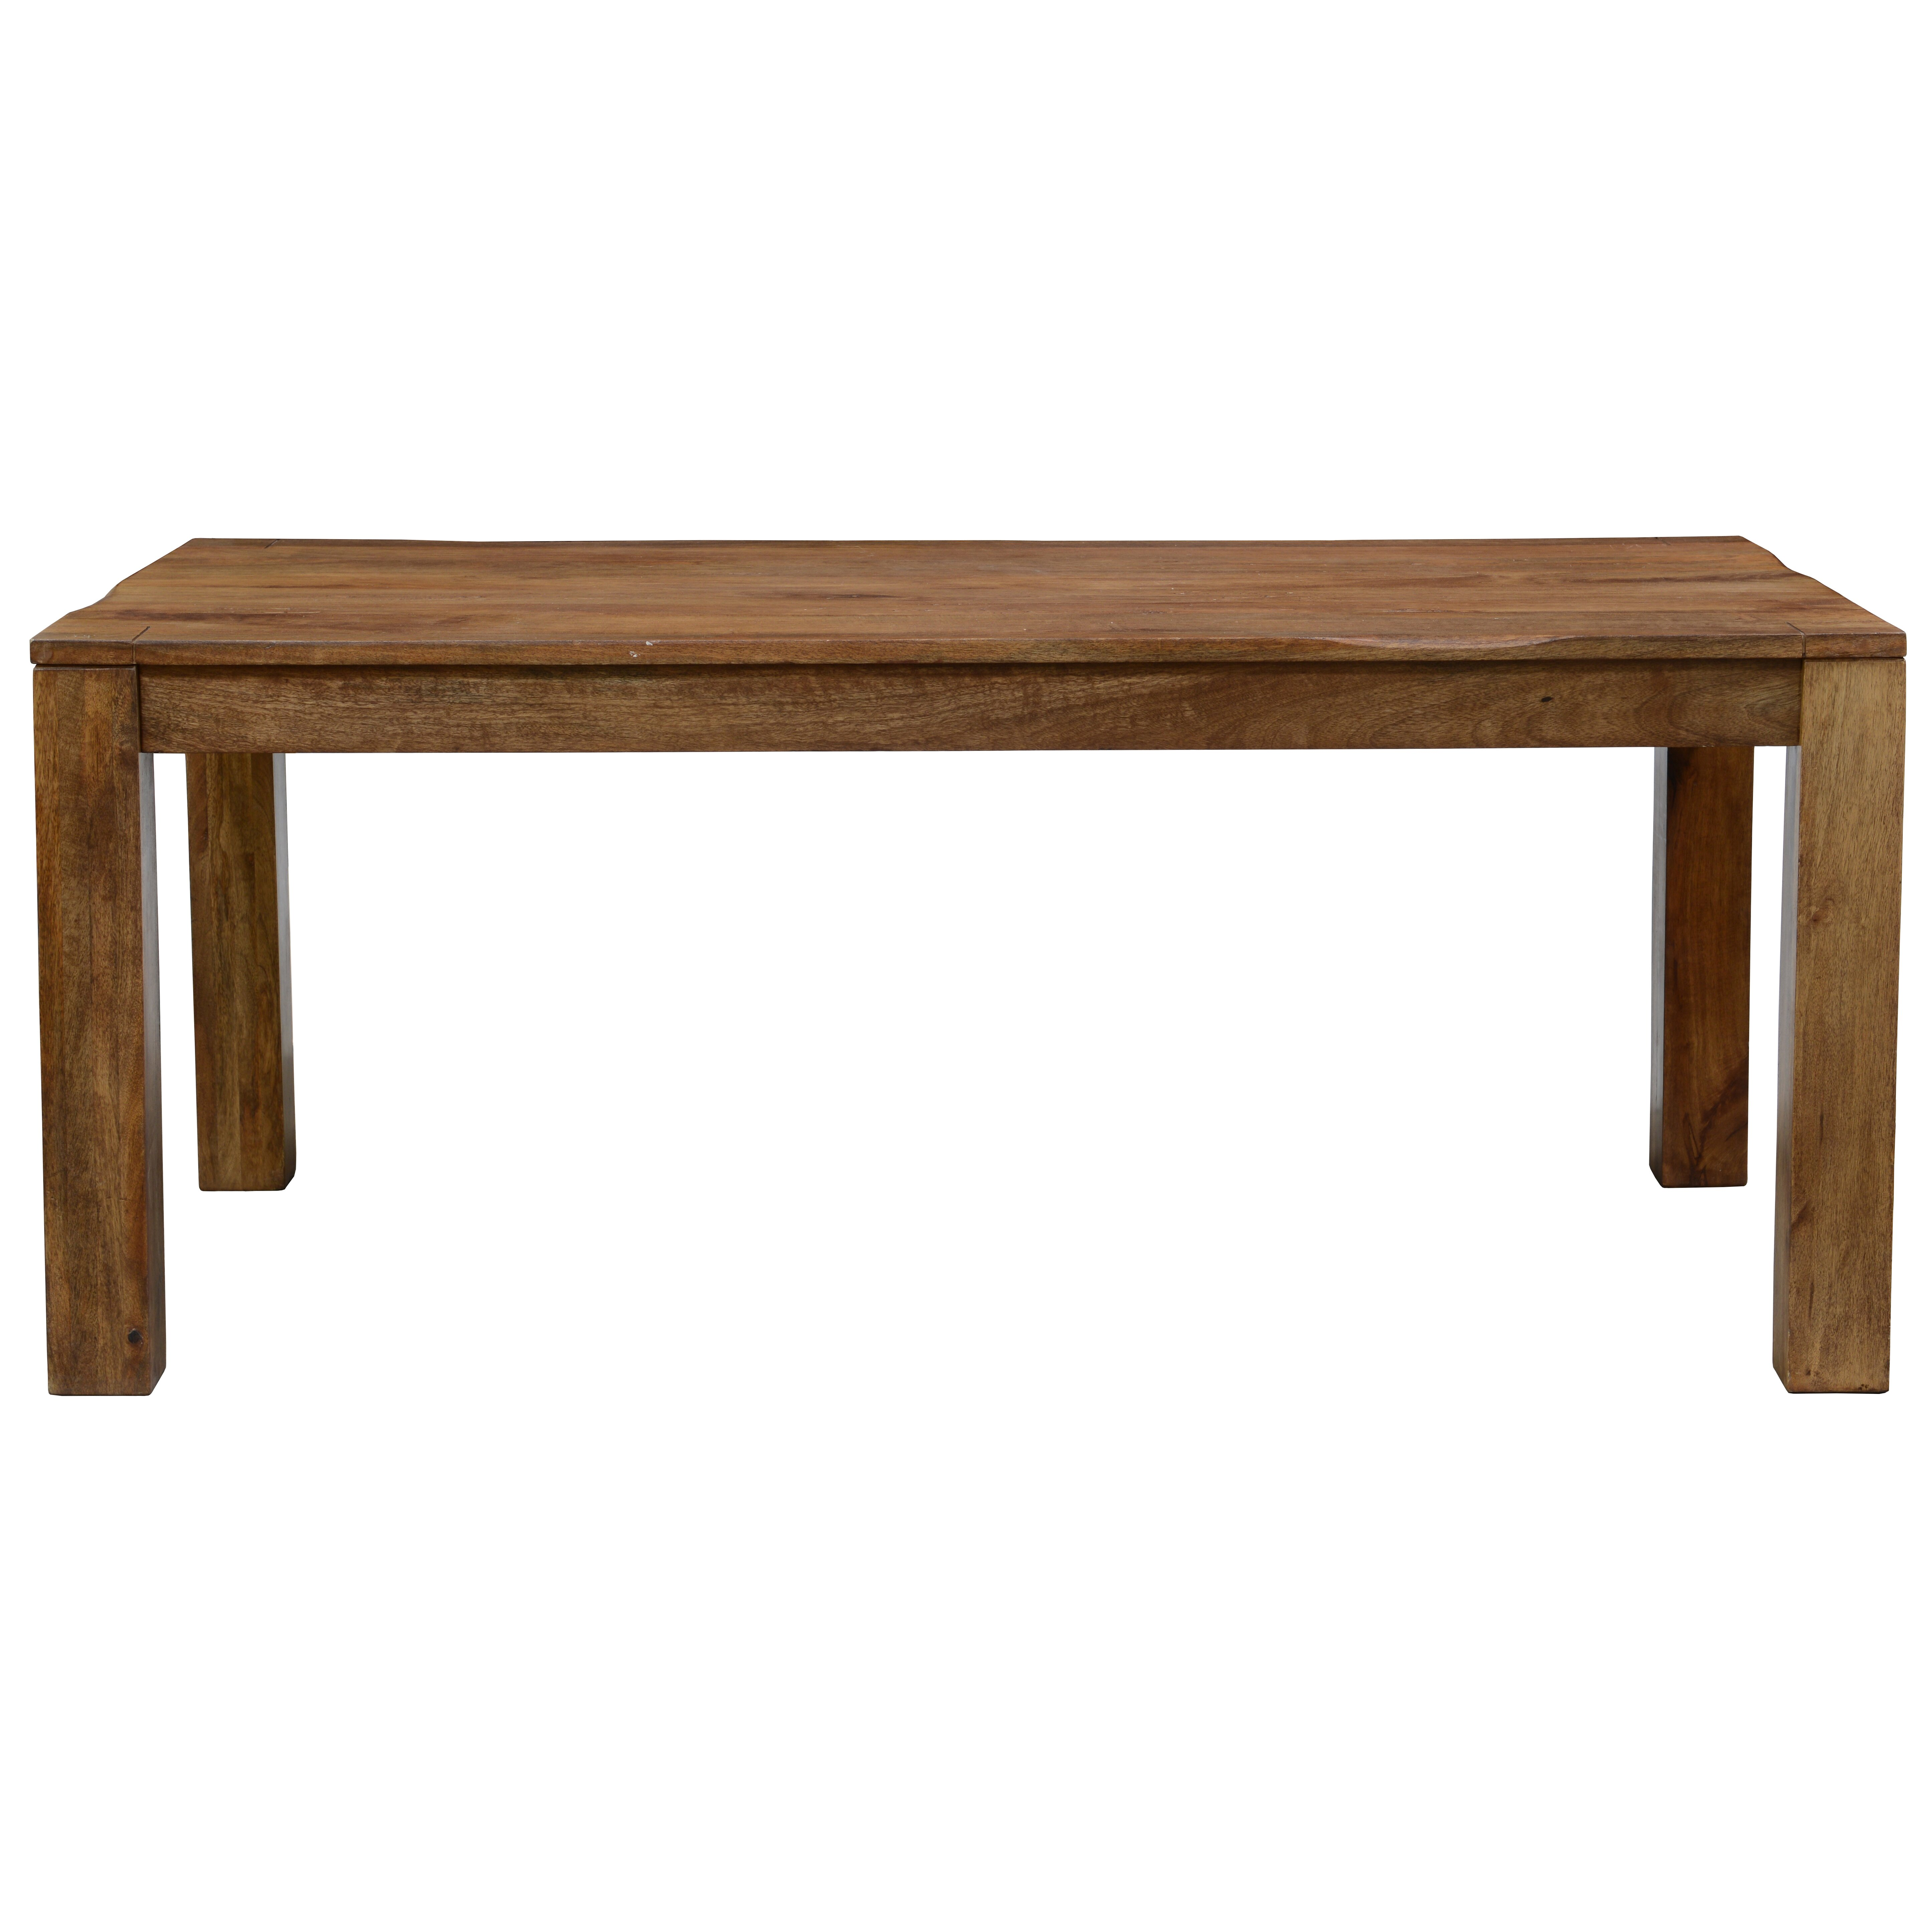 Laurel foundry modern farmhouse opheim wood kitchen table for Wood top kitchen table